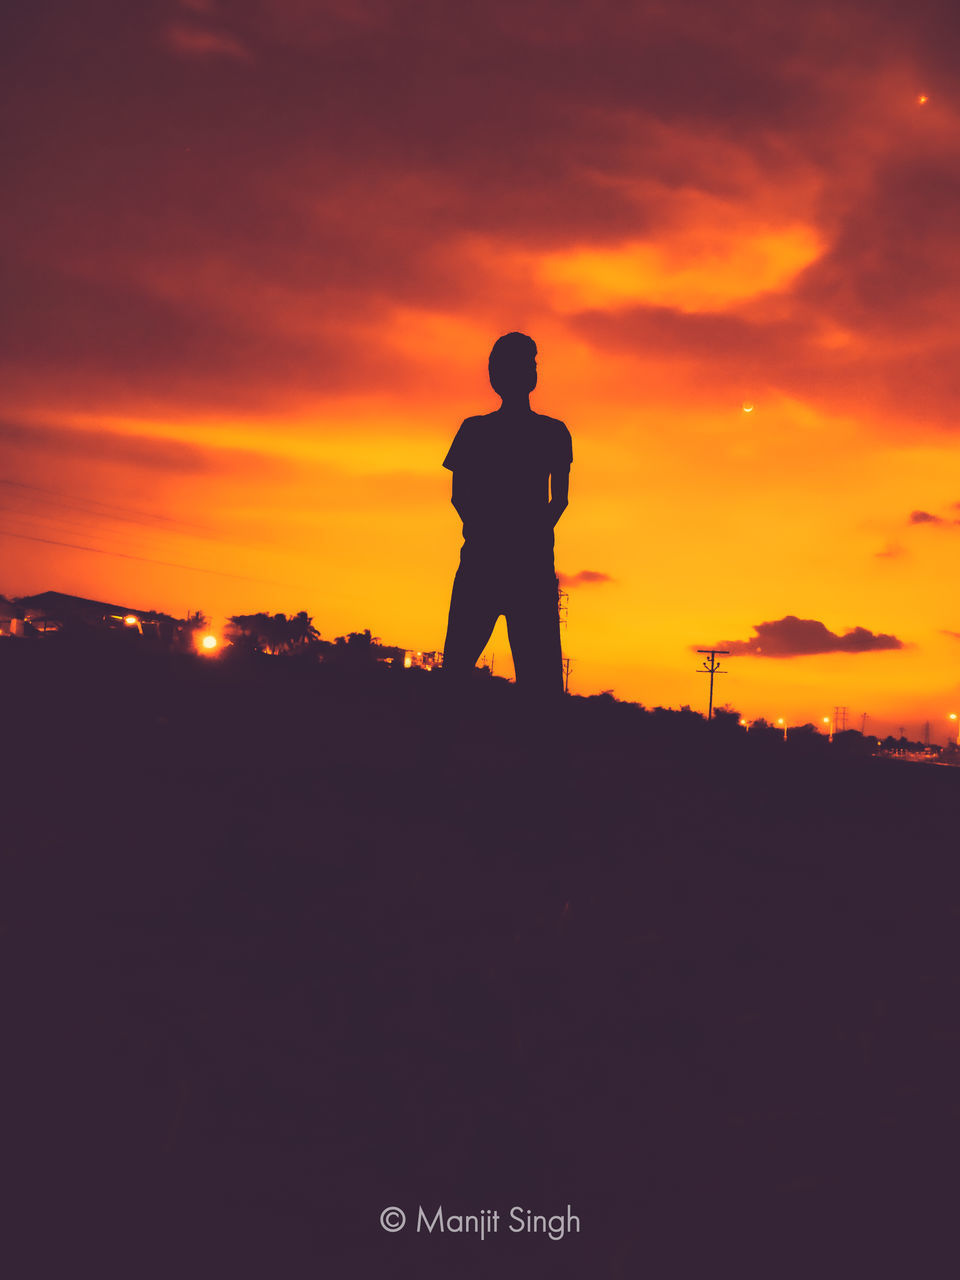 SILHOUETTE MAN STANDING ON FIELD DURING SUNSET